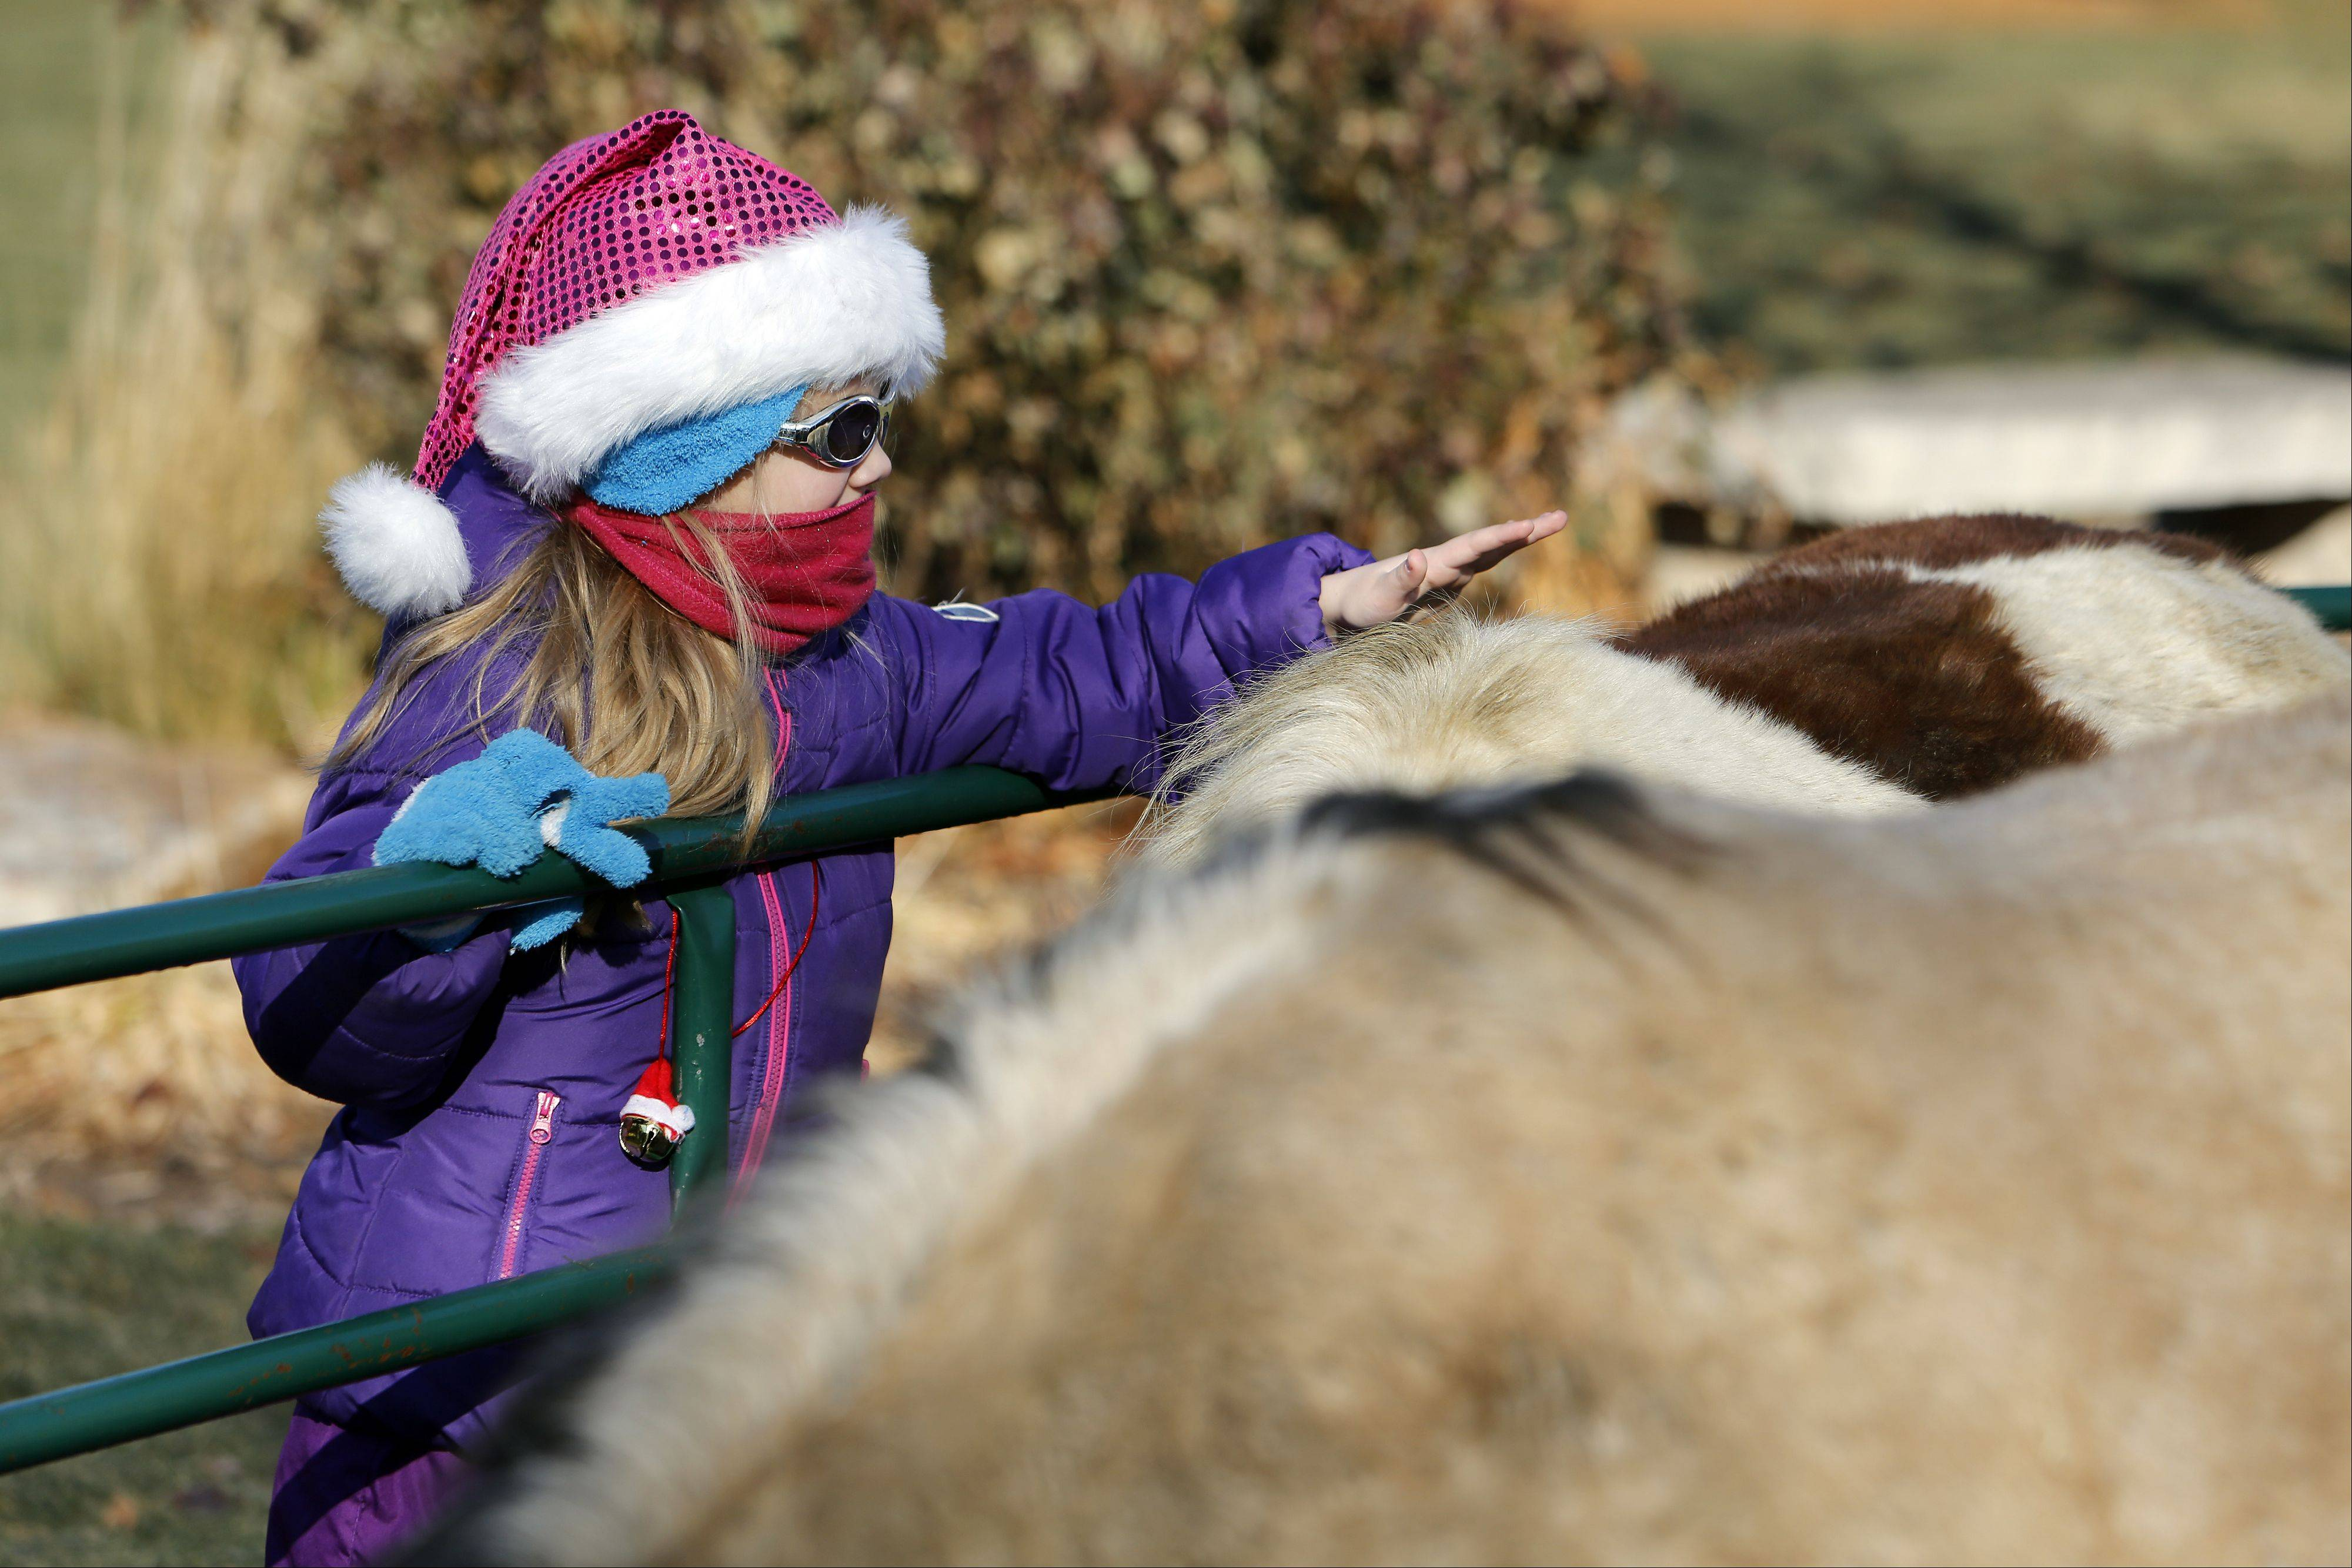 All bundled up and ready for the cold weather, Ryndall Rhoades, 8, checks out a few of the animals during Dickens in Dundee at Grafelman Park Saturday in West Dundee.